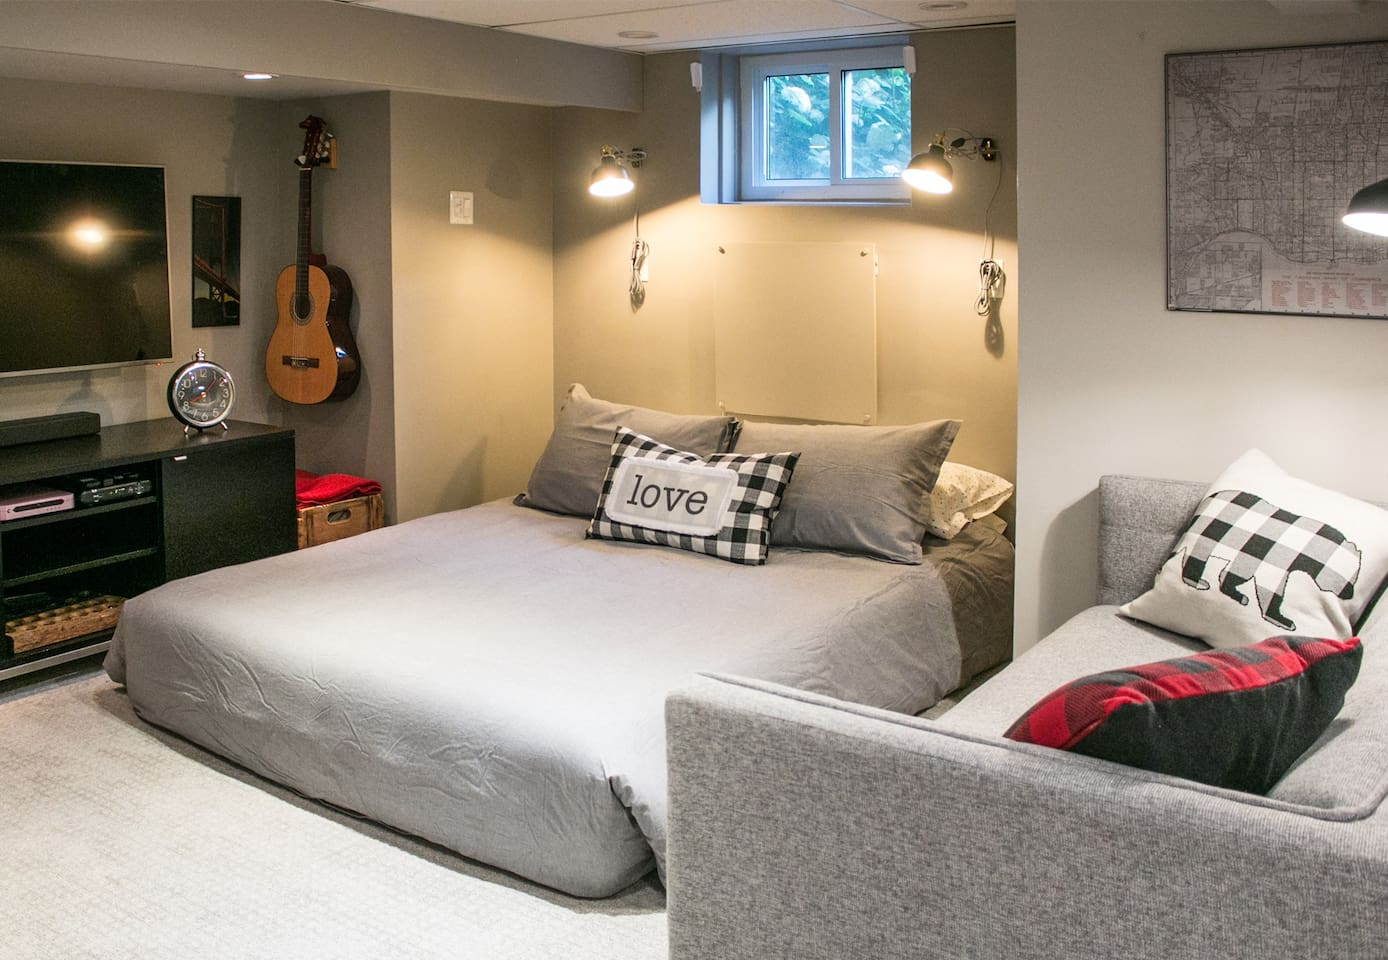 Get a great night's sleep on the comfortable sofa bed